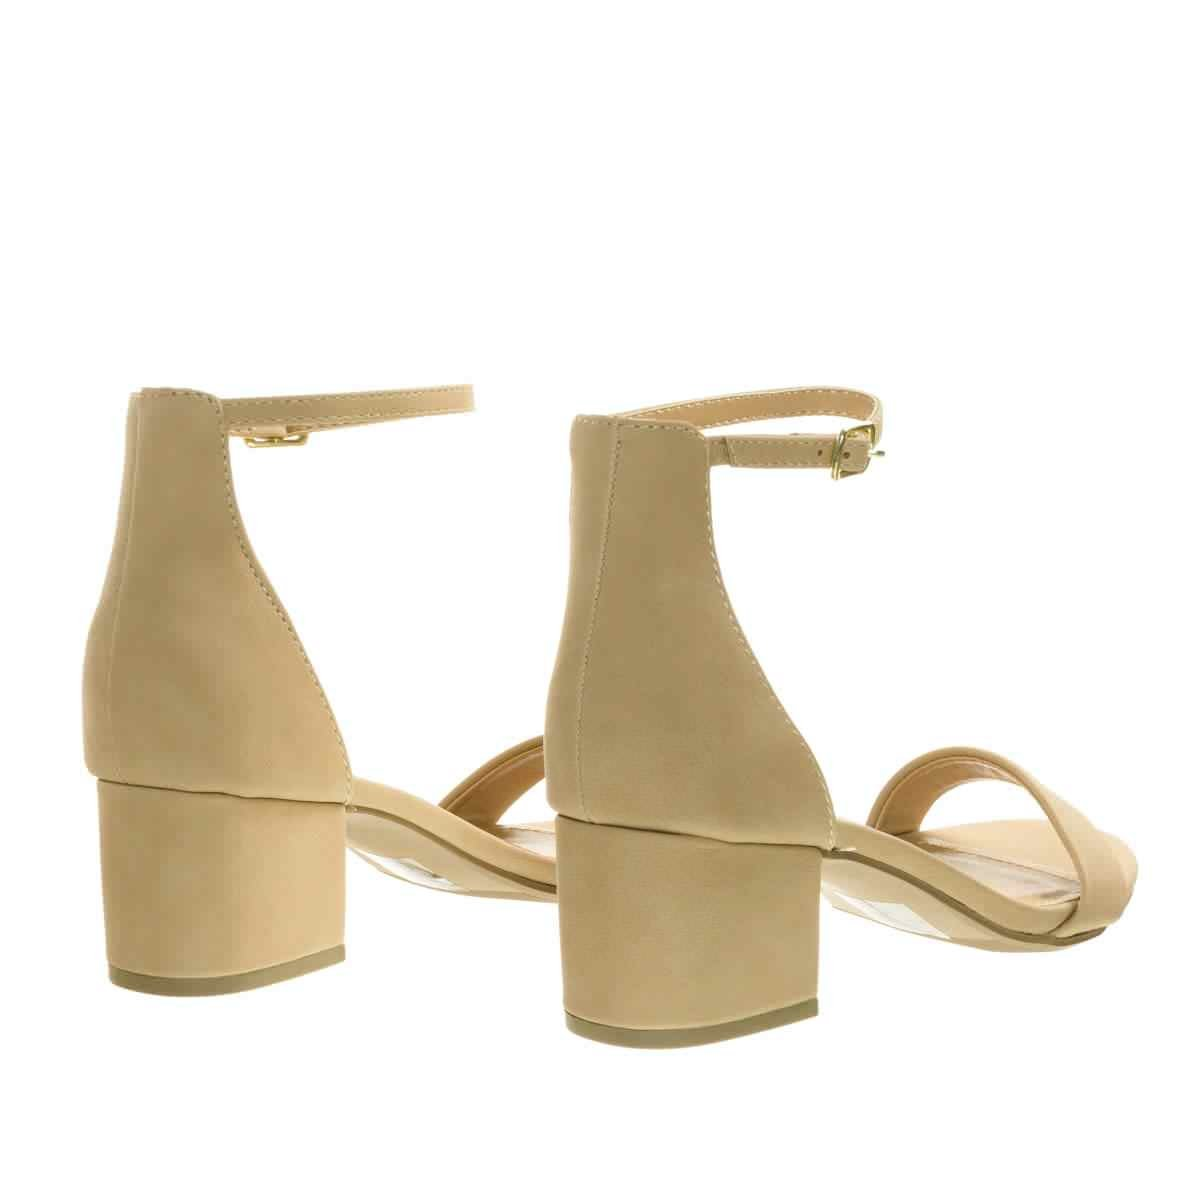 City Classified Womens Block Open Toe Ankle Strap Heeled Sandals